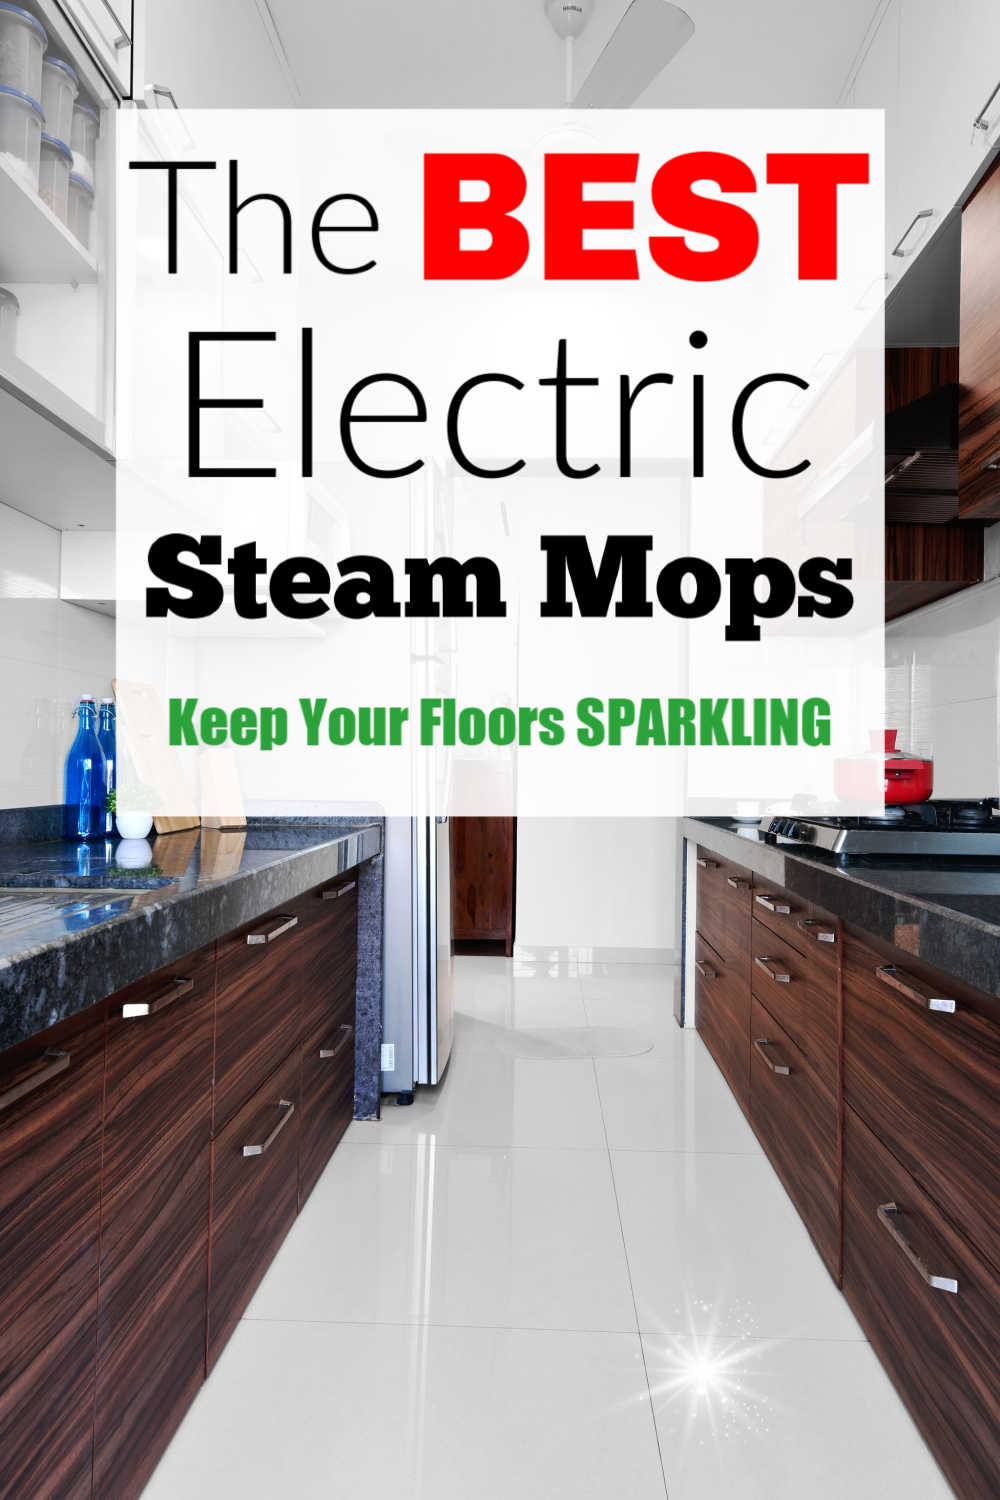 The Best Electric Steam Mops for Household Mopping